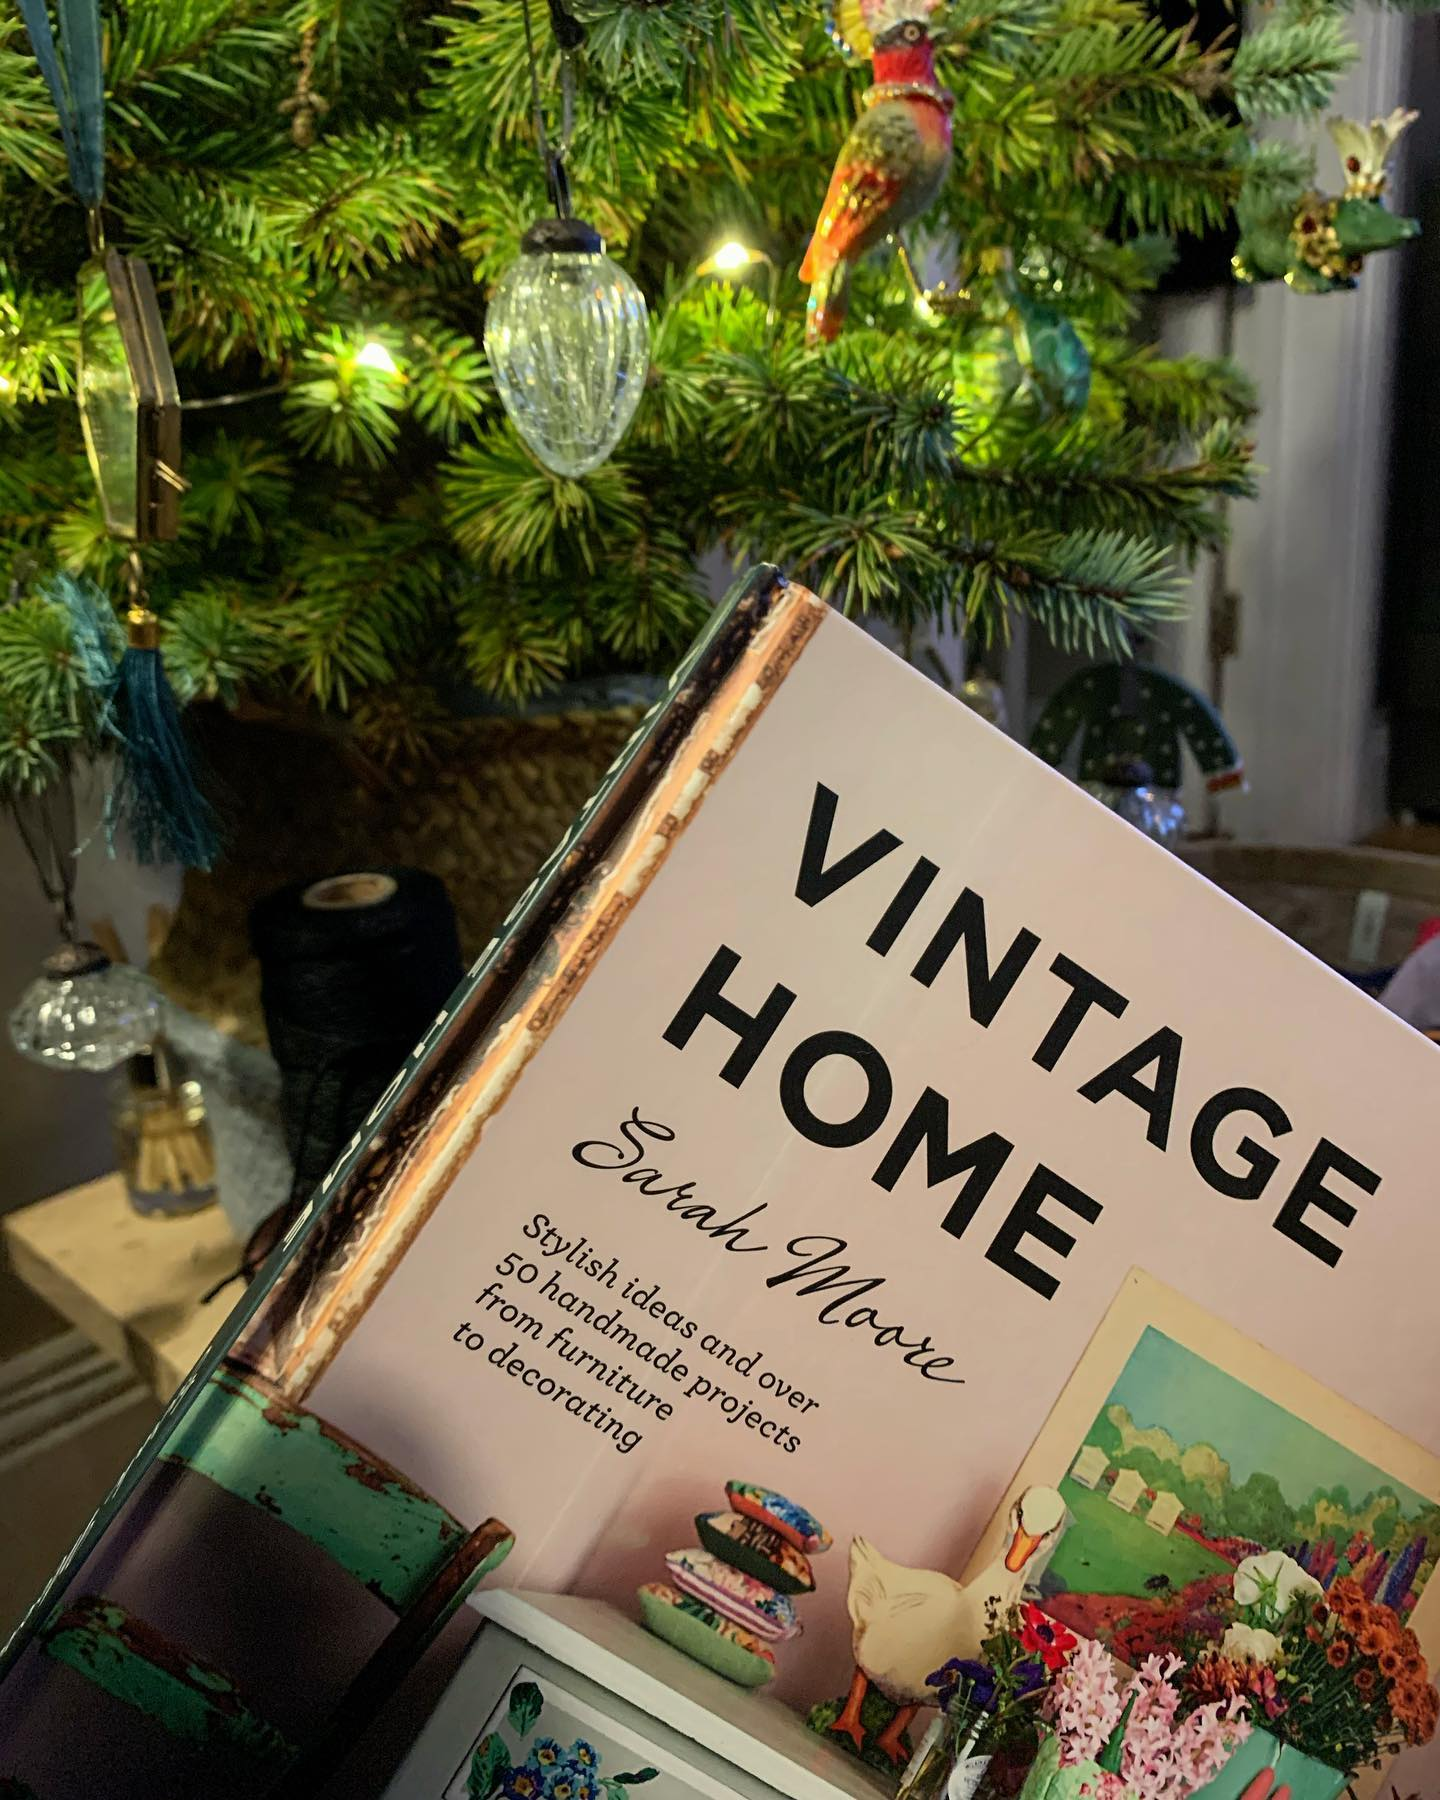 We got this Fabulous book from my folks!Getting inspiration for some small home improvement projects over the next few months. Have to say, we're very much enjoying a little down time, but it's back to work proper tomorrow, we'll be posting progress on some new projects very soon. ....#timeoff #minibreak #christmas #hols #home #decor #bespoke #reading #vintagehome #lightreading #inspiration #design #upcycle #craft #design #ginger #tweed #homewares